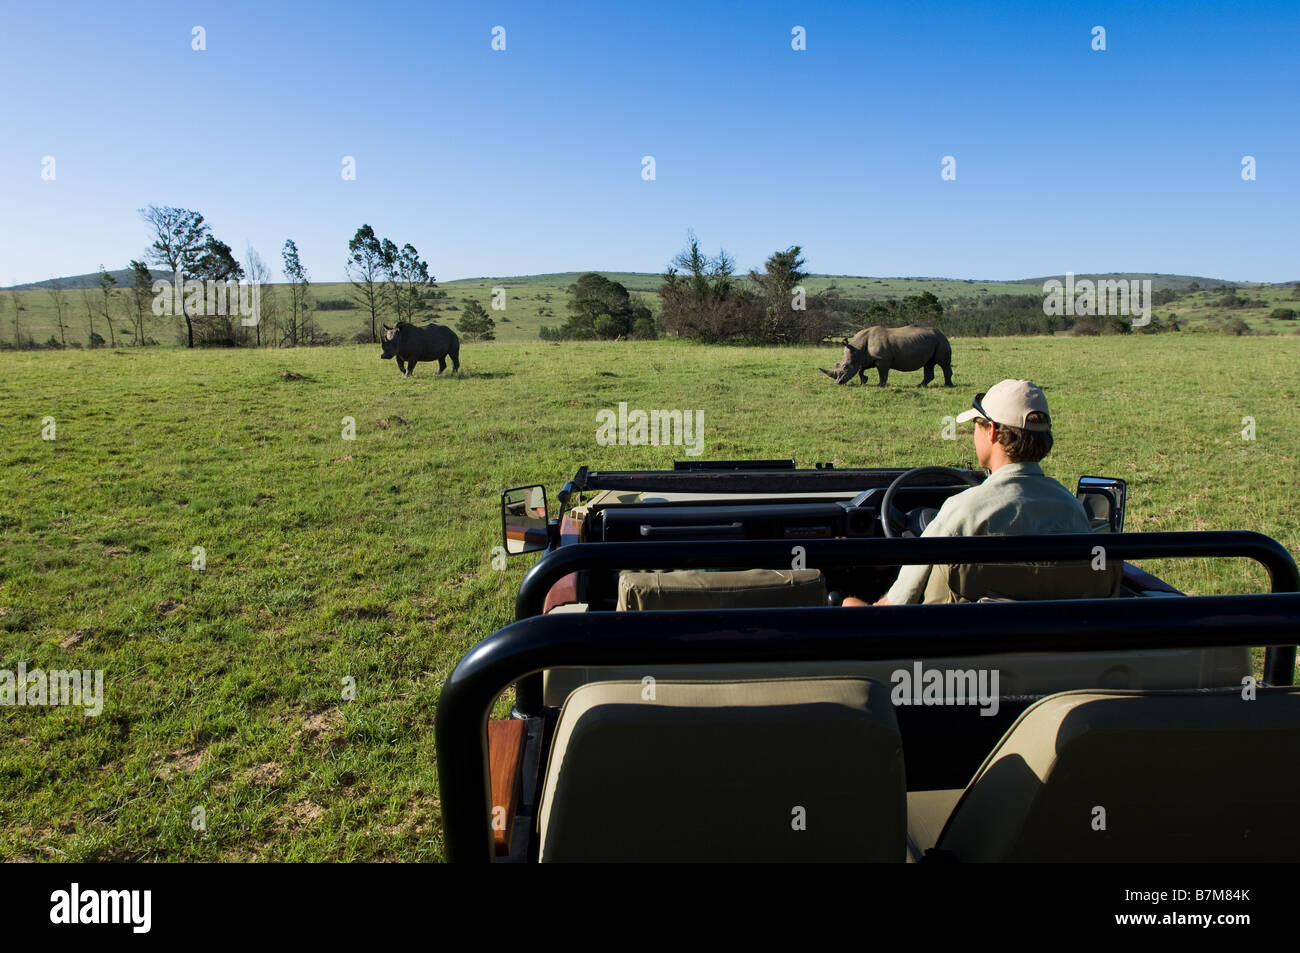 Image taken on a game drive in South Africa with the ranger sitting in the open vehicle and 2 rhinos in the background - Stock Image